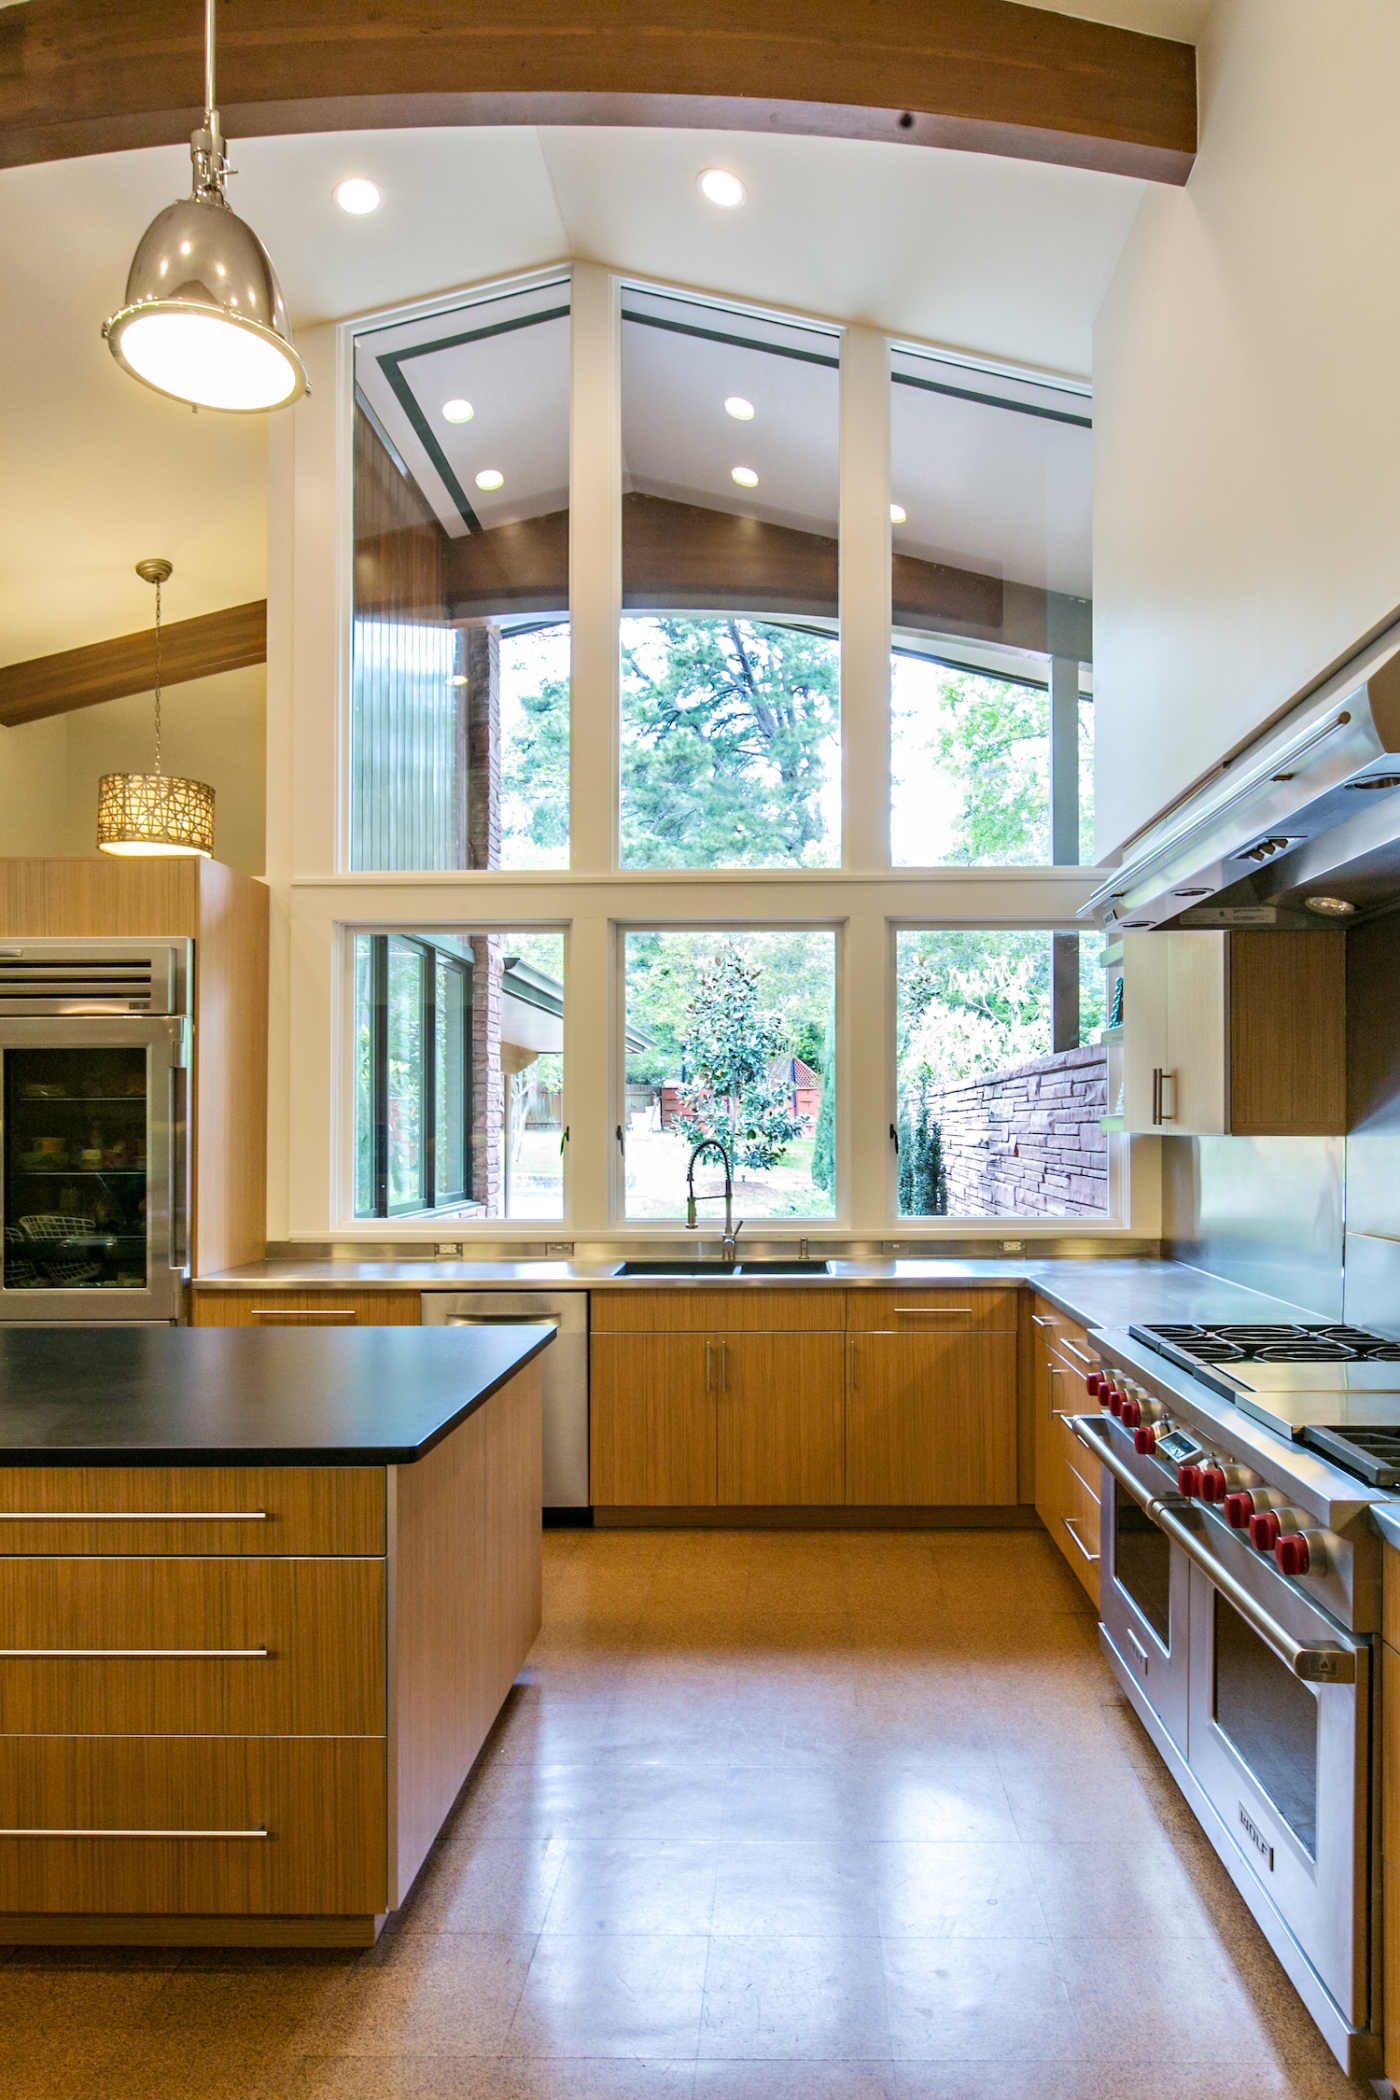 Mid Century Modern Home Kitchen.jpg